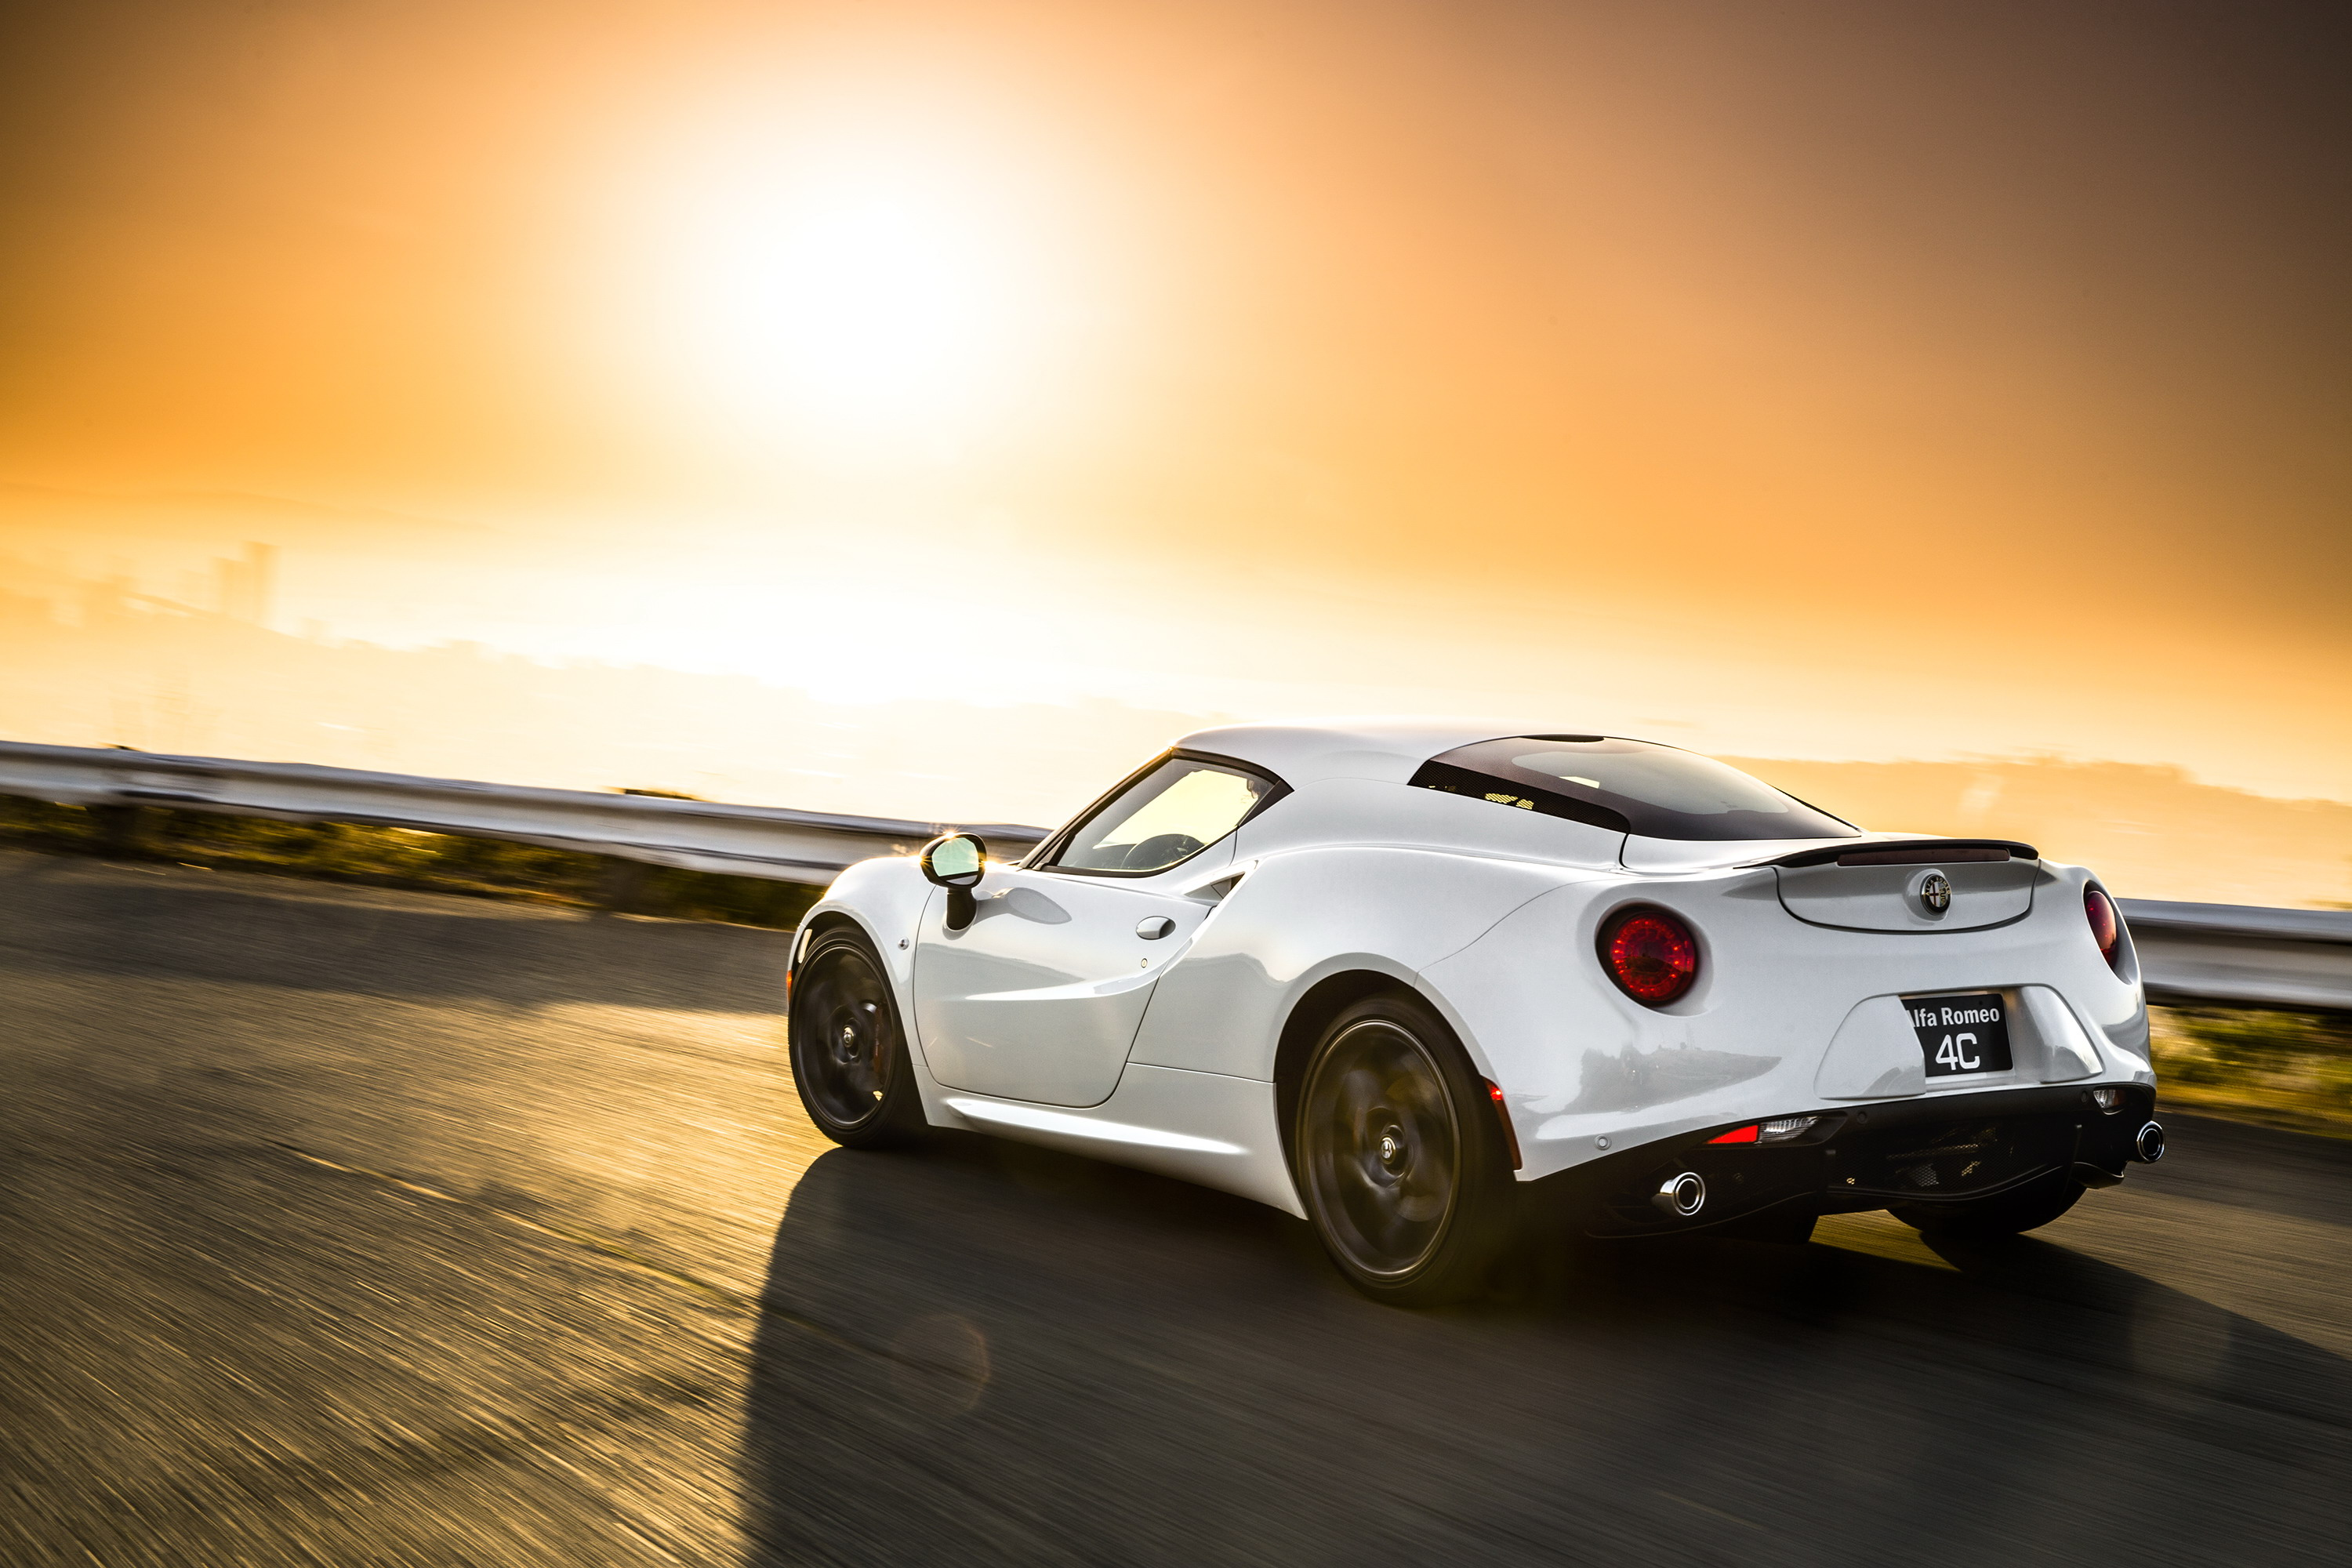 Word Has It That Theres A V6 Powered Alfa Romeo 6c In The Works 4c Wiring Harness Top Speed